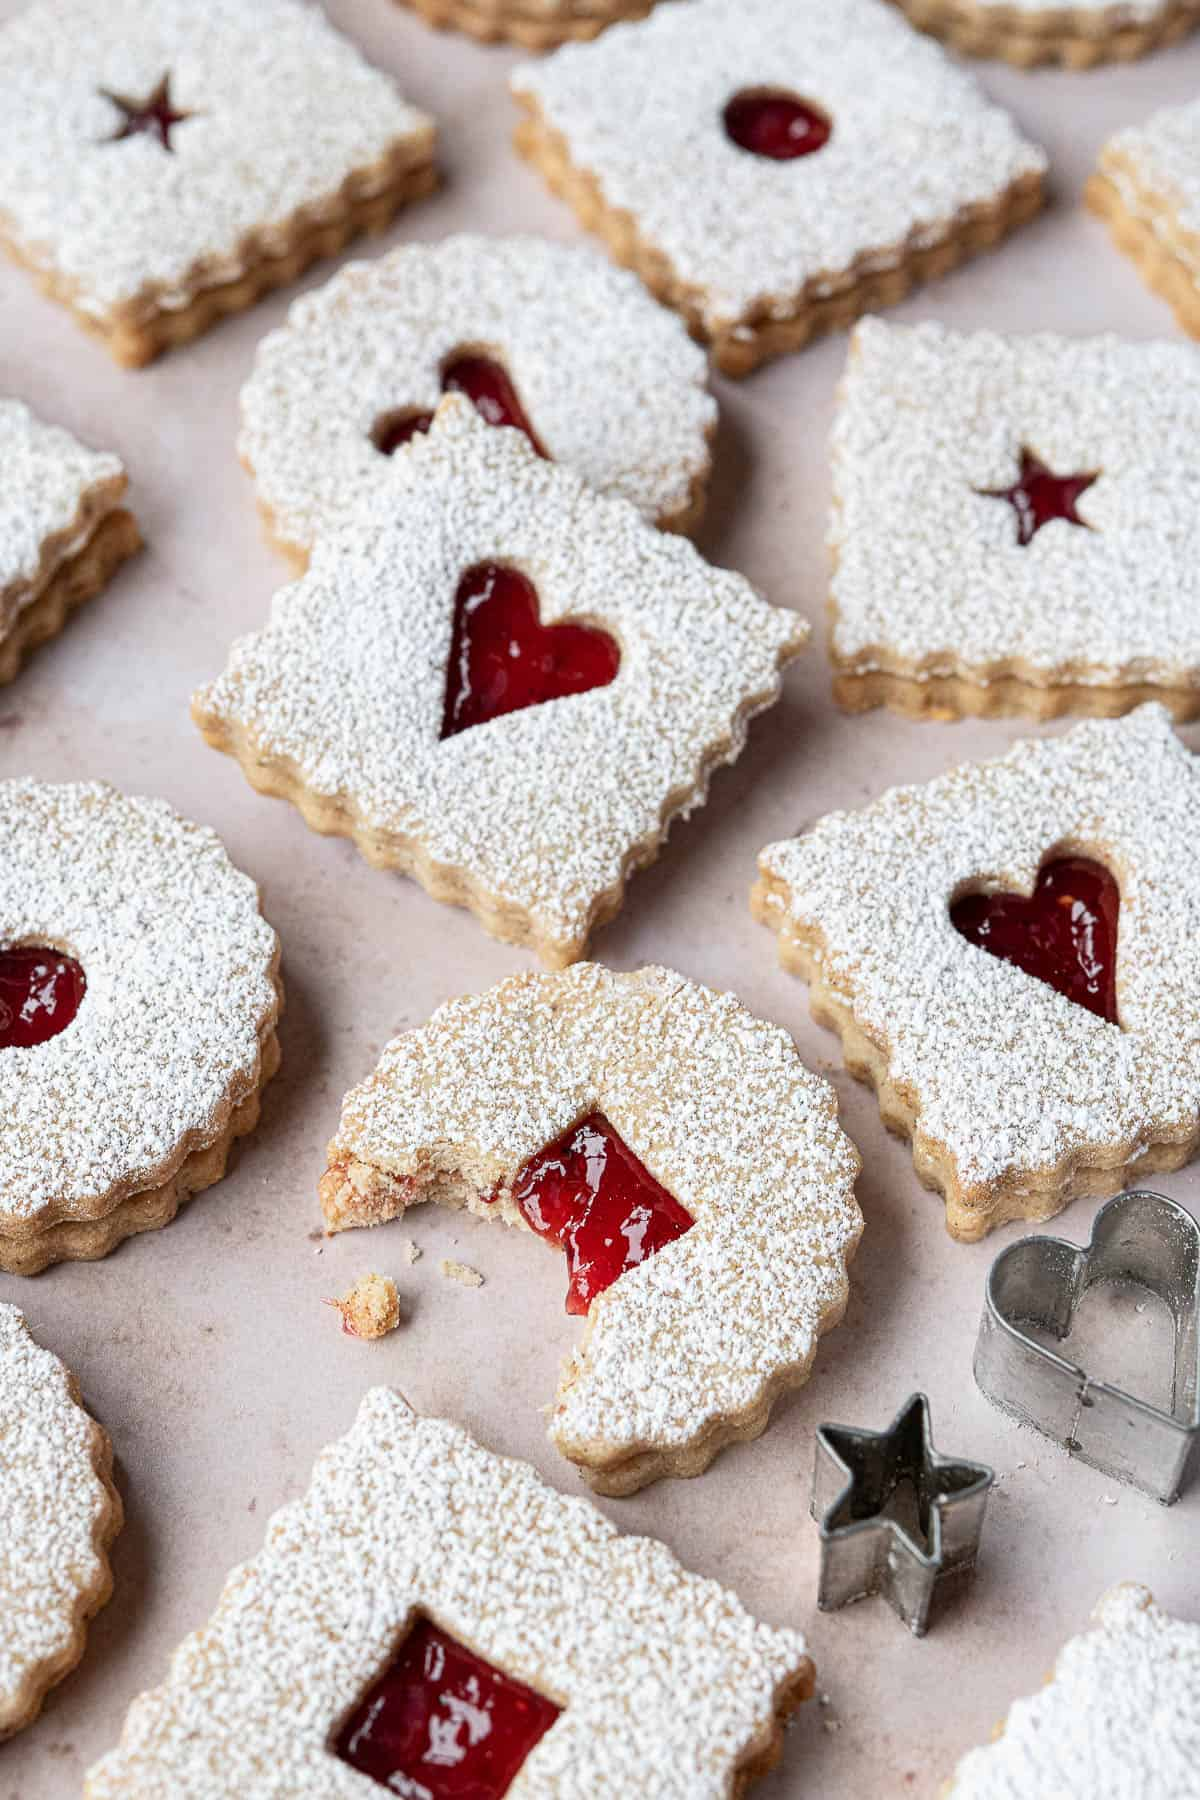 Close up of a Linzer cookie with a bite taken out of it.